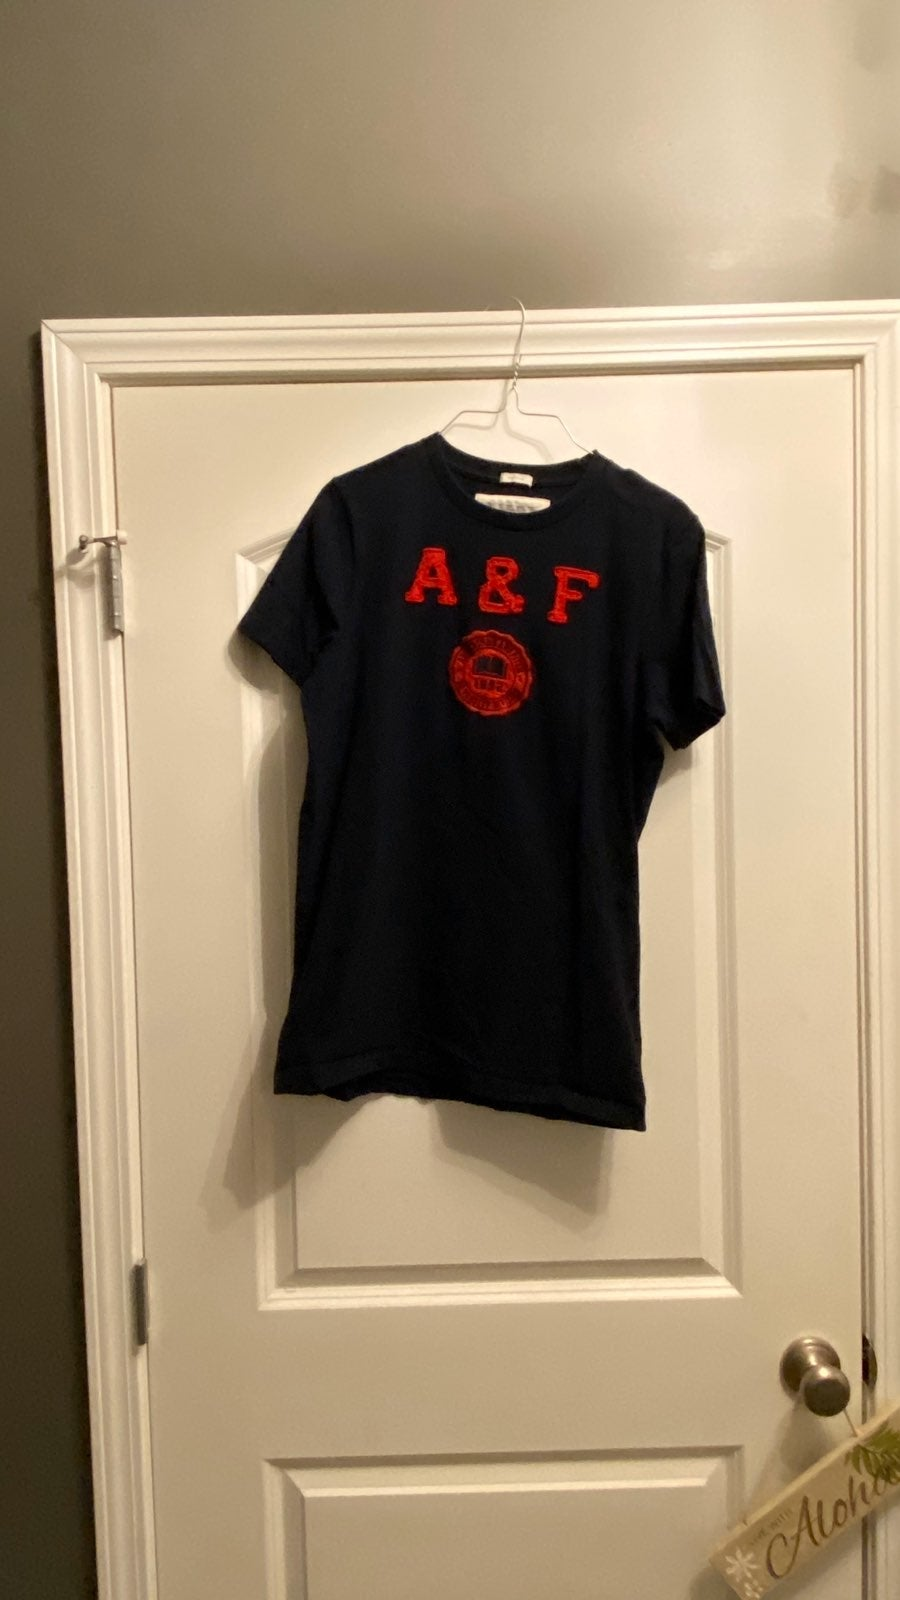 Men's Abercrombie & Fitch shirt